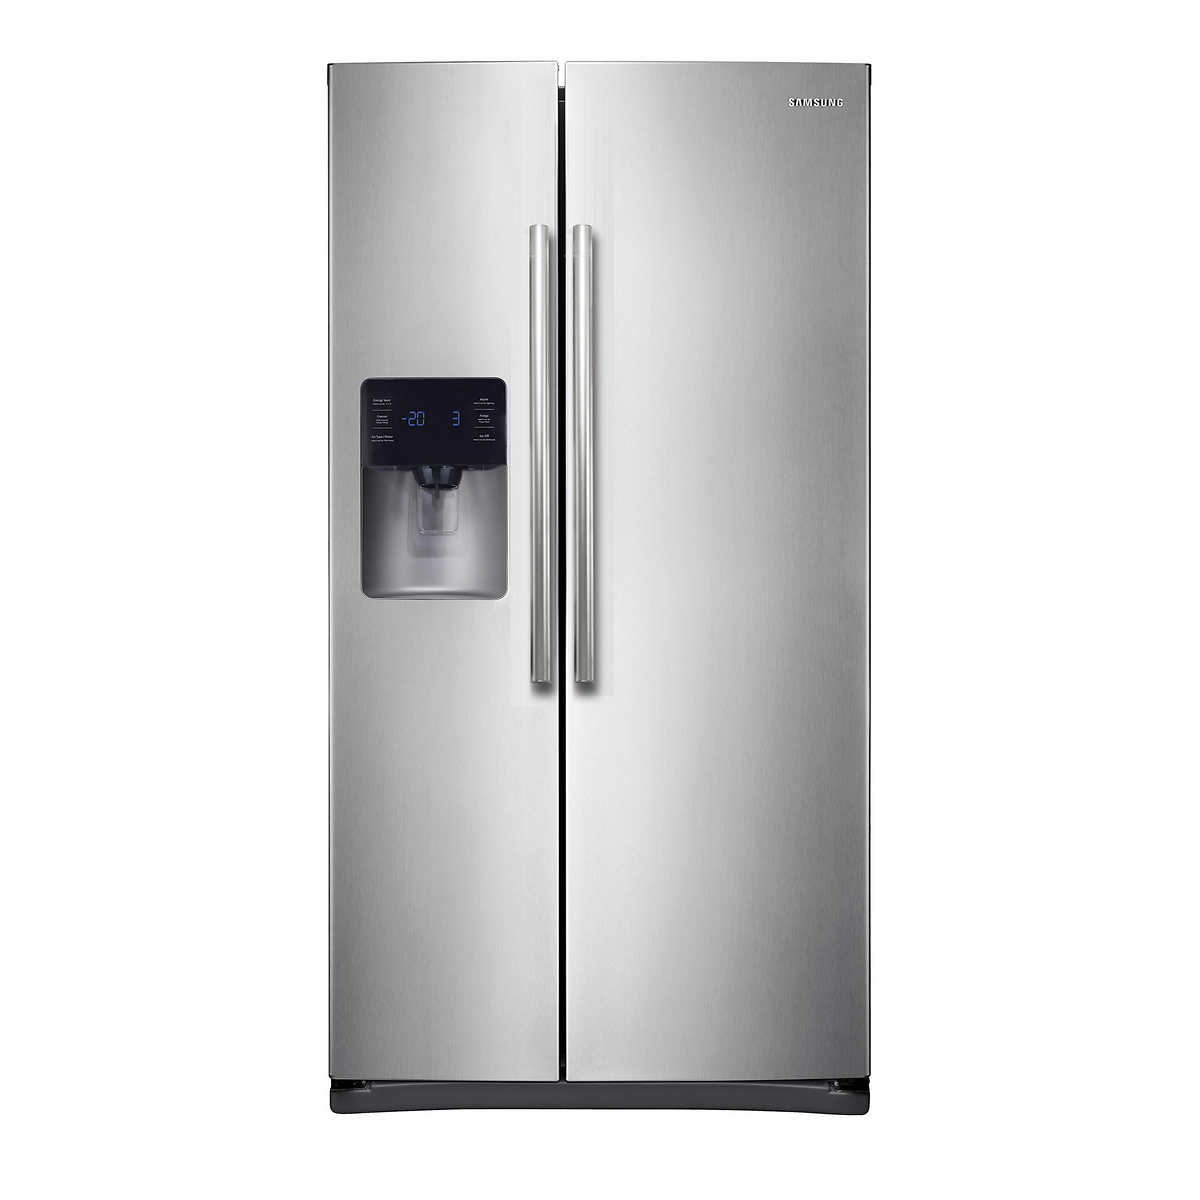 Ge 30 inch side by side white refrigerator - Samsung 24 5cuft Side By Side Refrigerator With In Door Ice Maker In